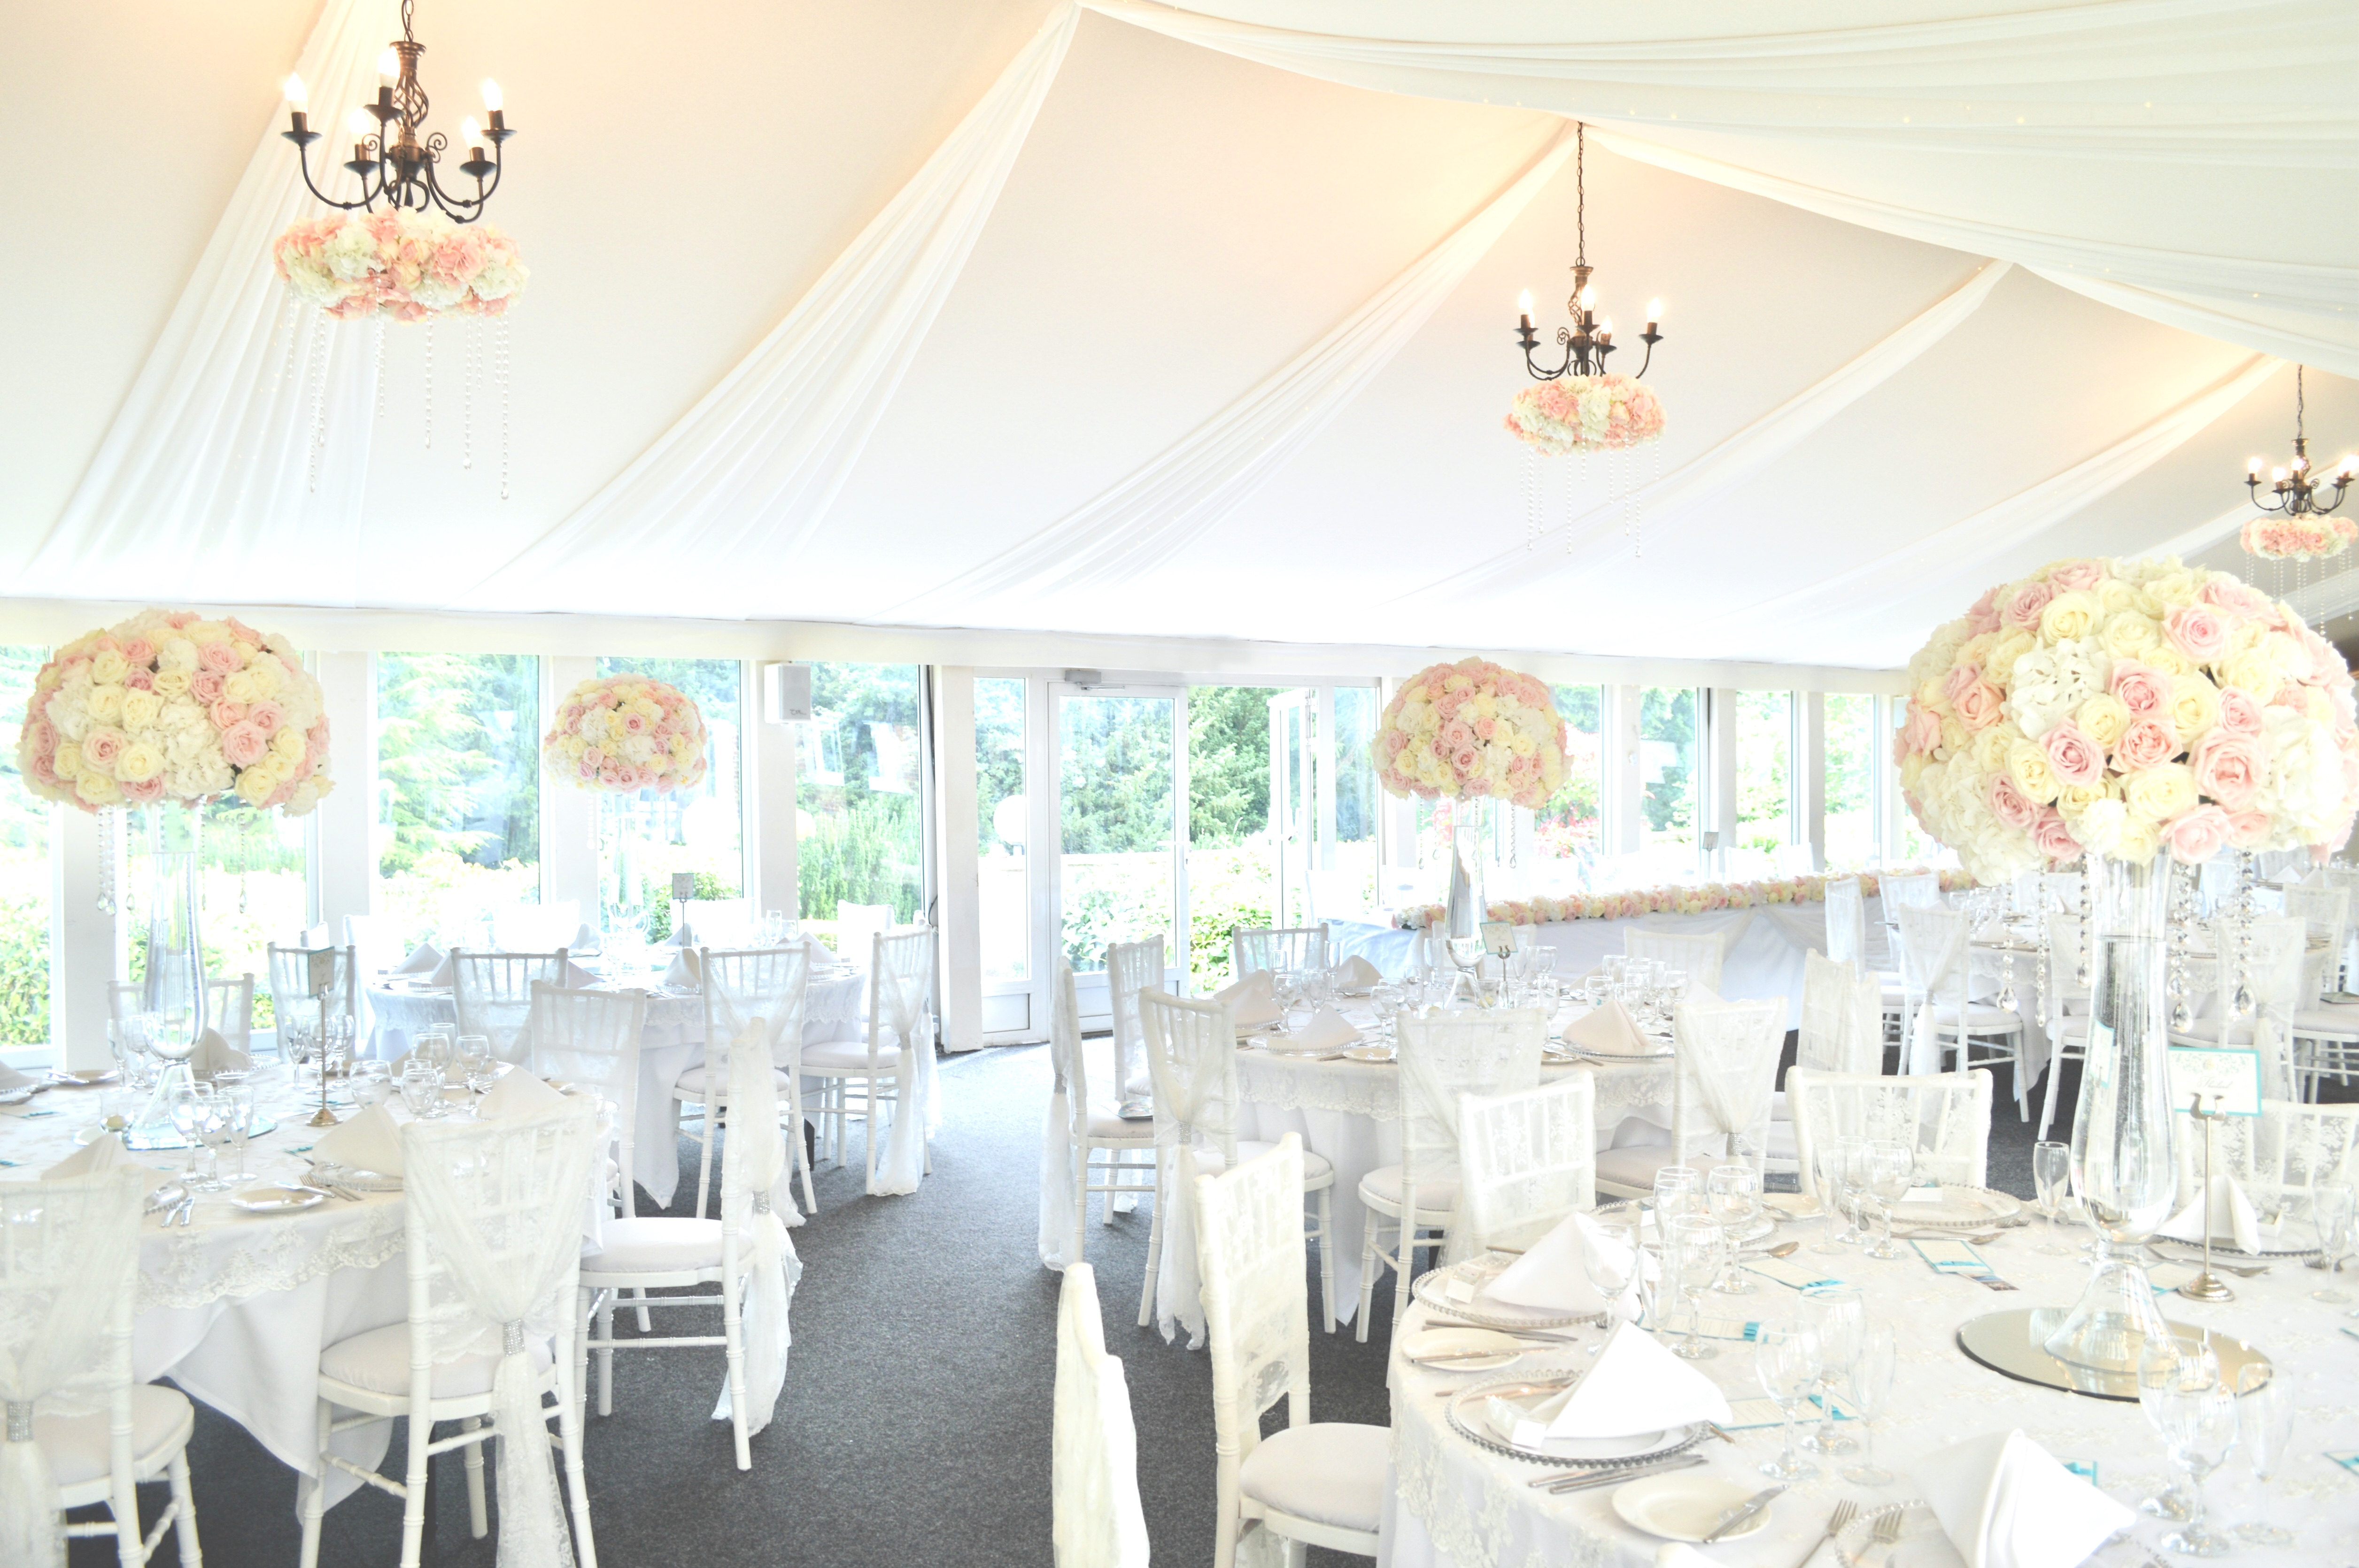 Luxury Blush Pink and White Wedding Flowers and Cake at Hunton Park Peony Hydrangeas and Roses Tall Vase Centrepieces with Crystals and Floral Chandelier Cherie Kelly Cake London 5